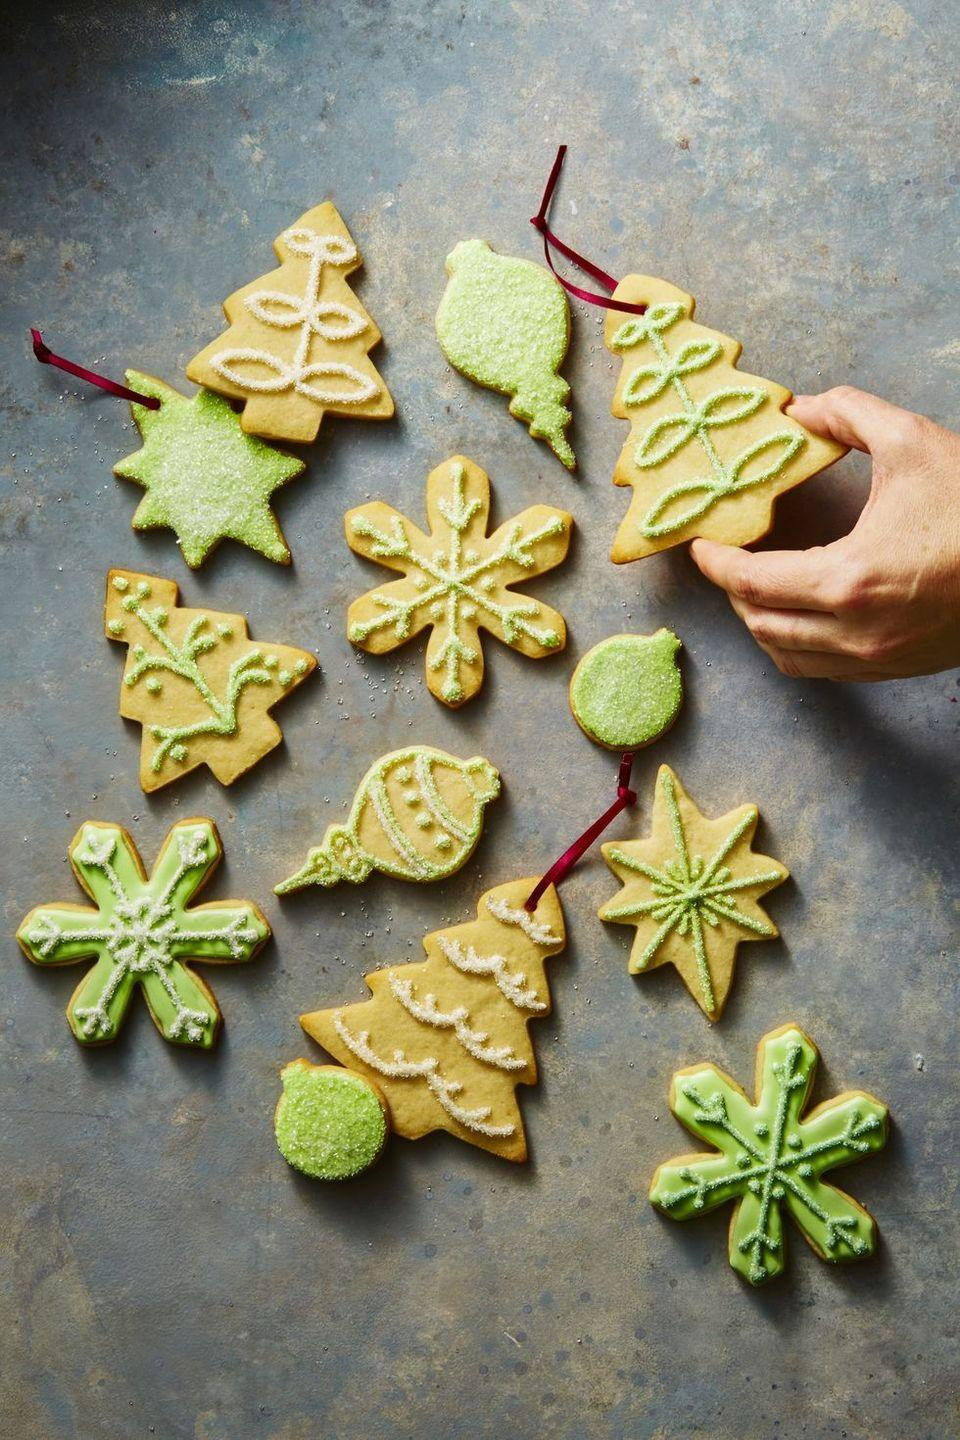 "<p>The best part of baking up a batch of ""ornament cookies"" is forgetting they're for the tree—oh, and nibbling on a few. (We won't tell!)</p><p><strong>Get the tutorial at <a href=""https://www.goodhousekeeping.com/food-recipes/dessert/a46925/sugar-cookie-ornaments-recipe/"" rel=""nofollow noopener"" target=""_blank"" data-ylk=""slk:Good Housekeeping"" class=""link rapid-noclick-resp"">Good Housekeeping</a>. </strong></p><p><a class=""link rapid-noclick-resp"" href=""https://www.amazon.com/slp/red-ribbons/6yz5jcy7bja2735?tag=syn-yahoo-20&ascsubtag=%5Bartid%7C10050.g.1070%5Bsrc%7Cyahoo-us"" rel=""nofollow noopener"" target=""_blank"" data-ylk=""slk:SHOP RED RIBBON"">SHOP RED RIBBON</a></p>"